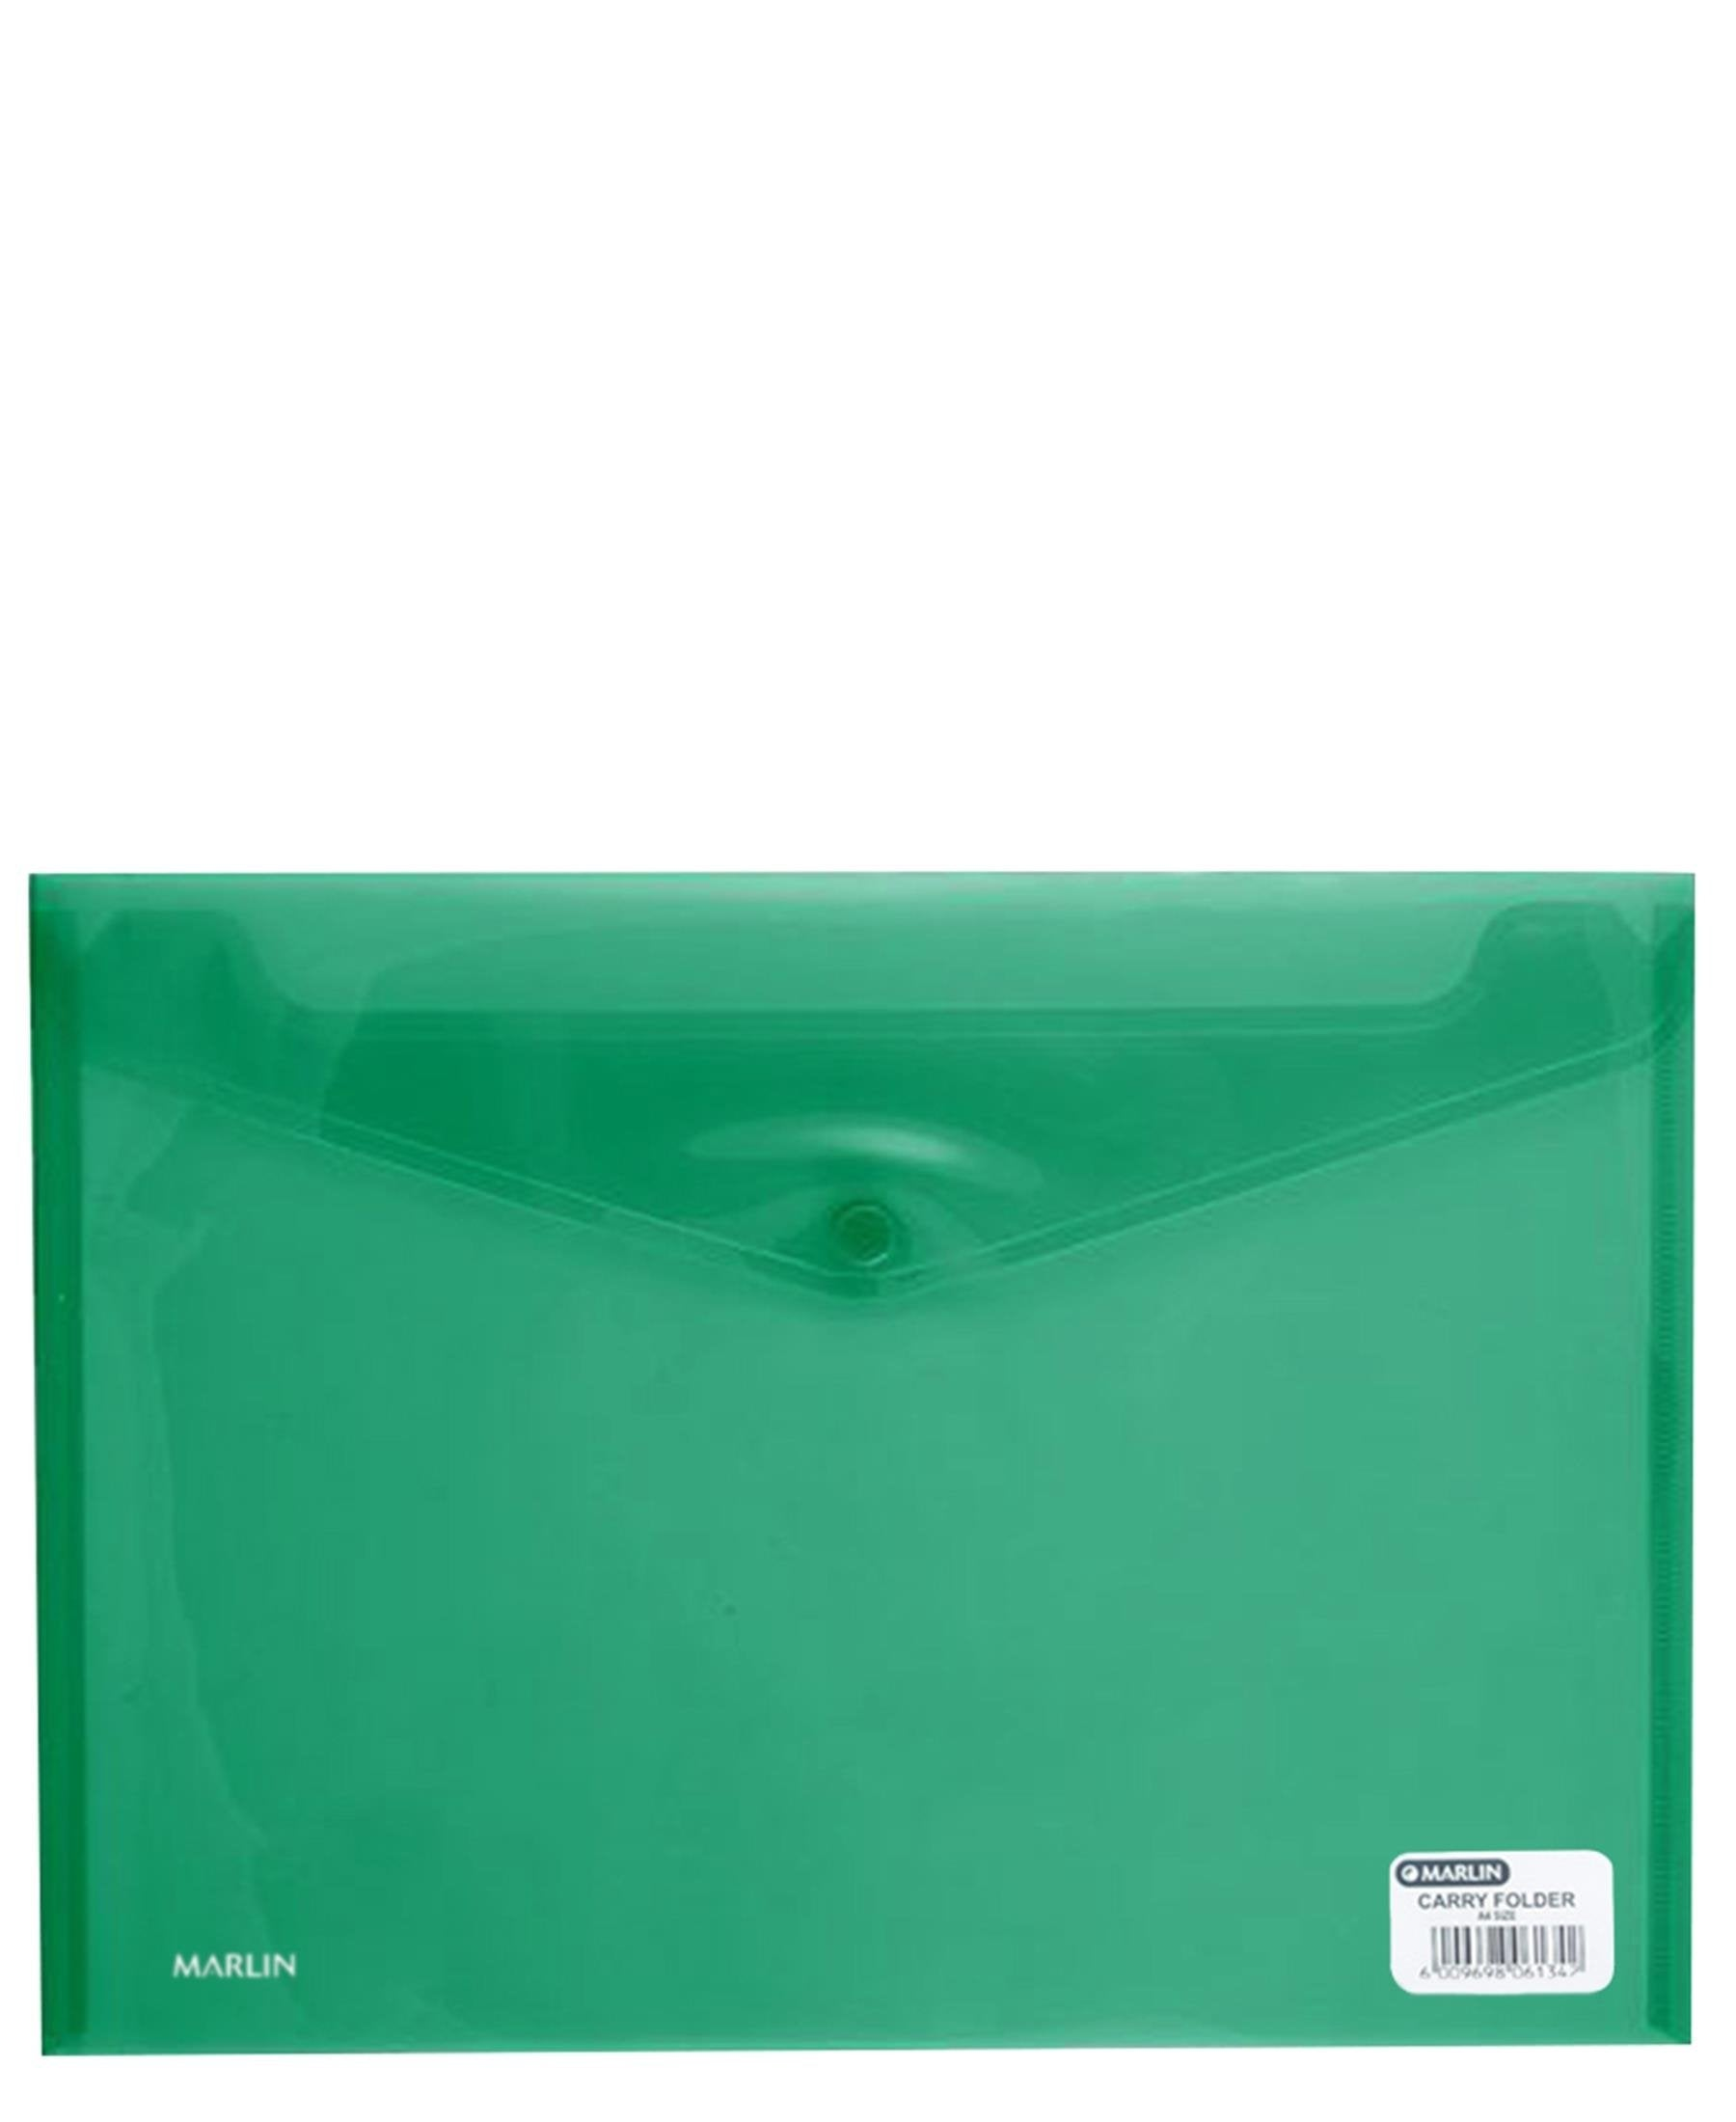 Marlin A4 Carry Folder - Green